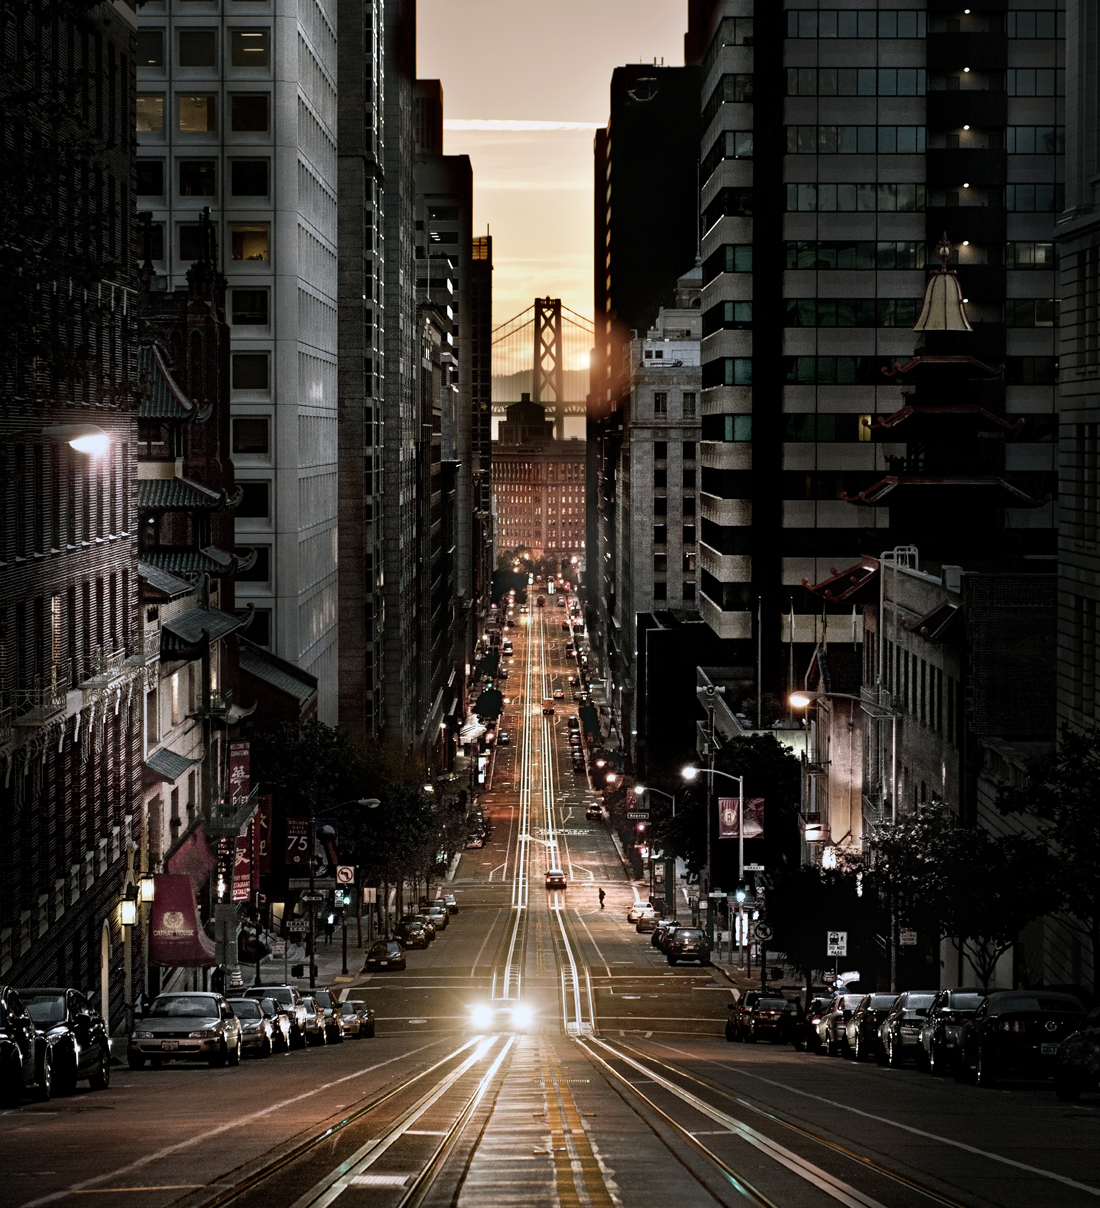 san francisco street, tim wallace commercial photographer, stock photography, commercial photography, tim wallace